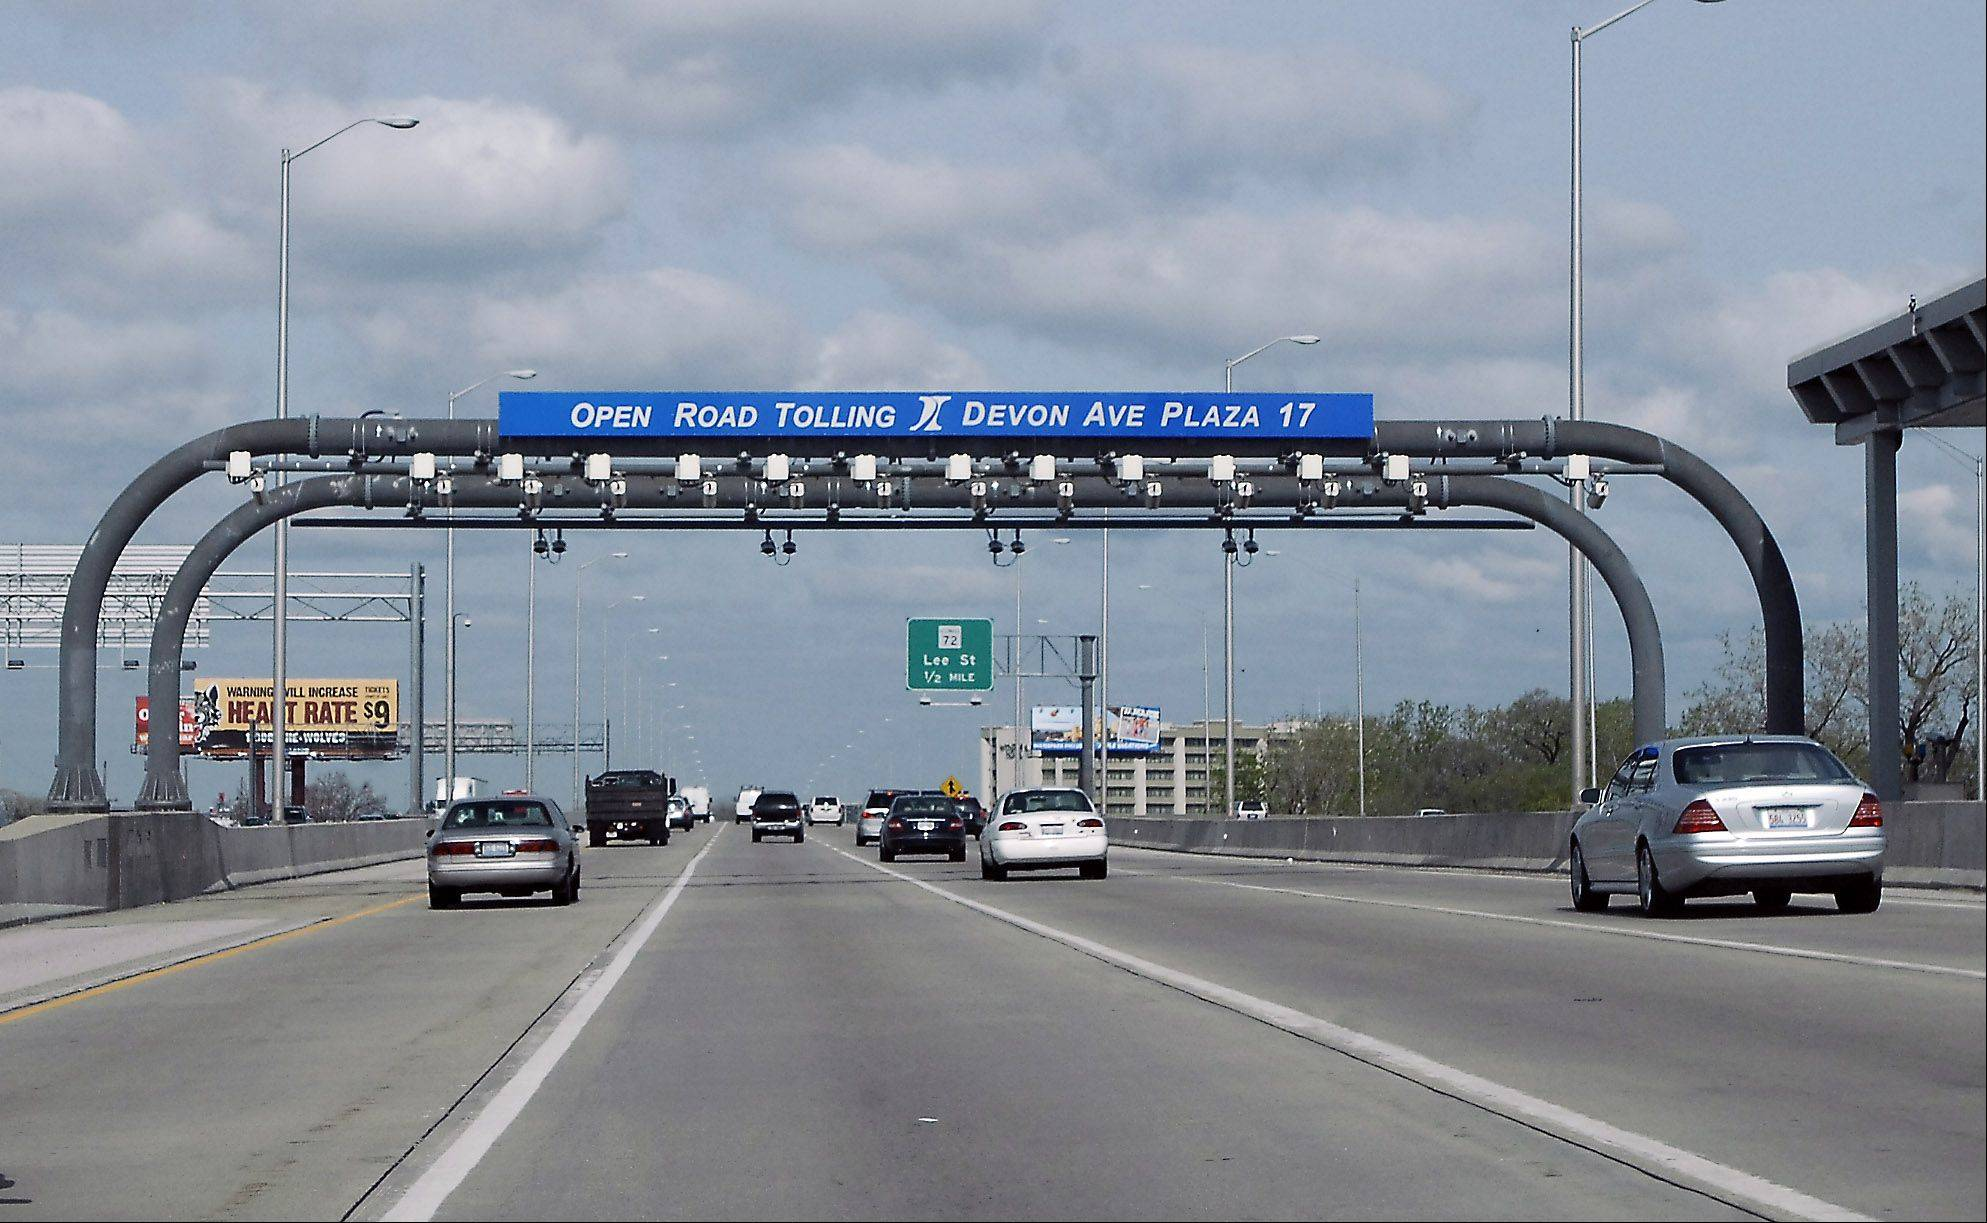 A bill sponsored by state Sen. Matt Murphy, a Republican from Palatine, would make it more difficult for tollway directors to authorize future toll hikes by requiring a supermajority of eight votes in favor of any increase.